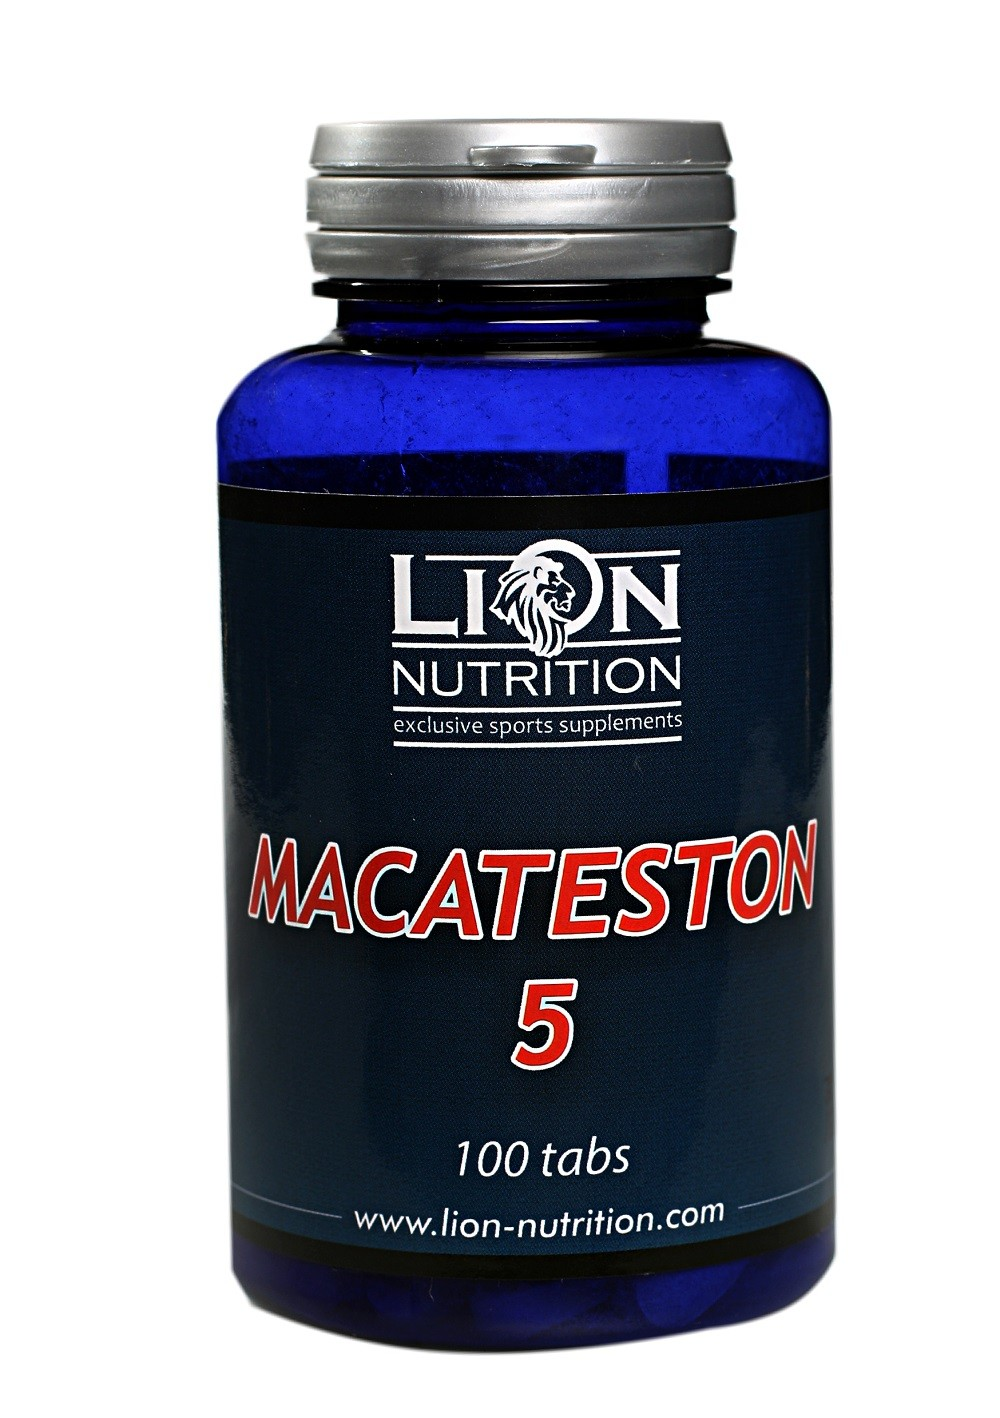 Lion Nutrition Macateston 5 - 100 tablet